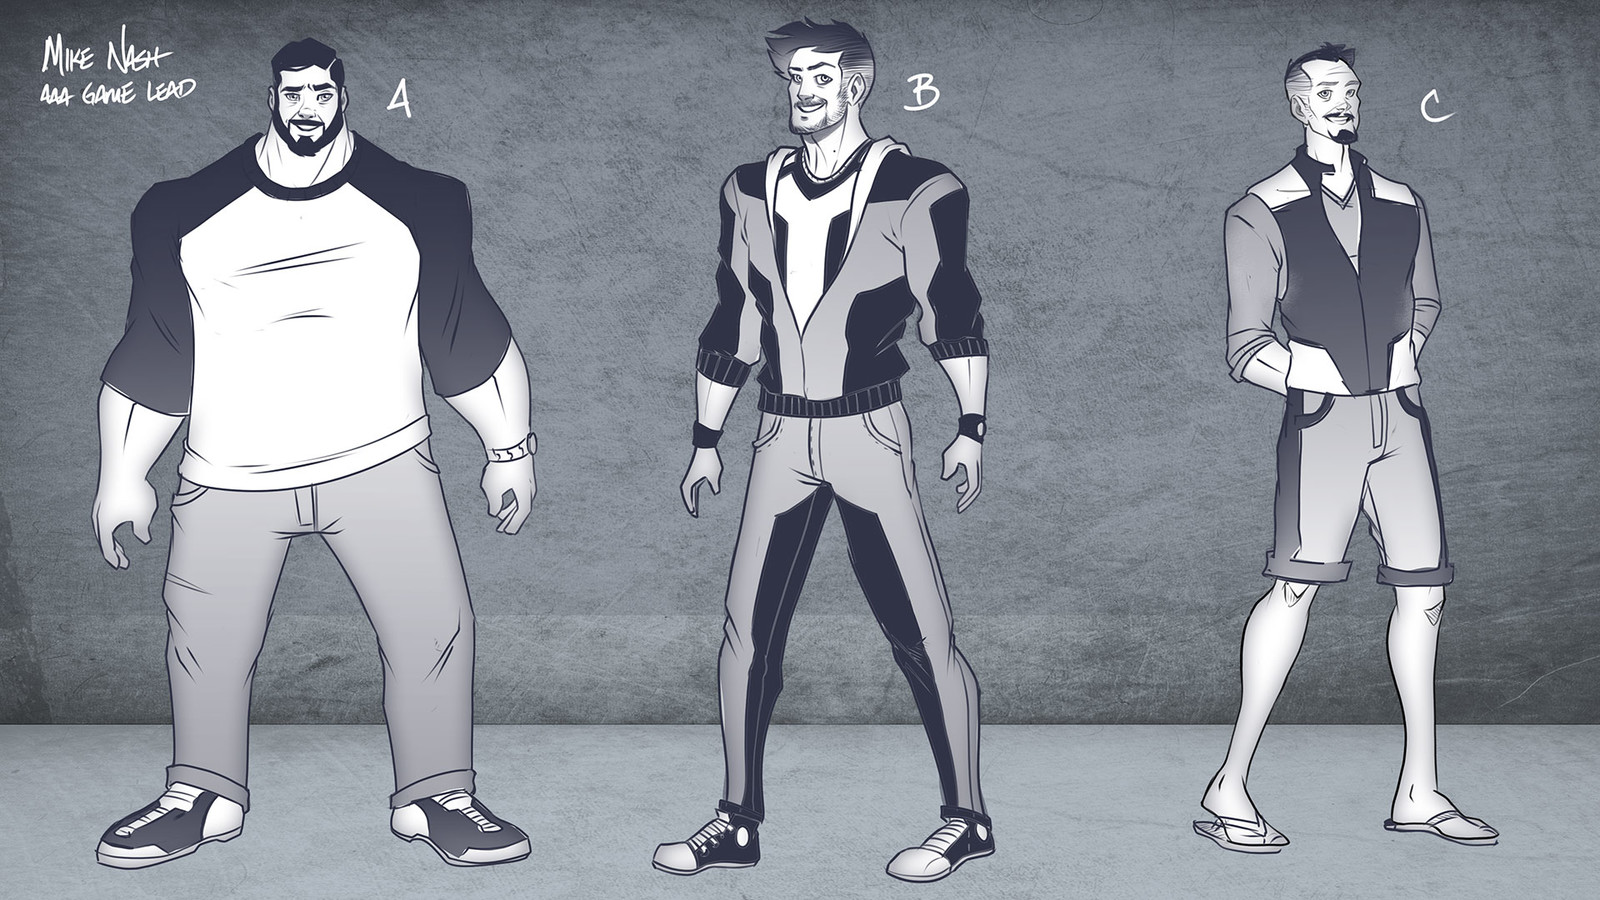 Refined character designs based on selected silhouettes